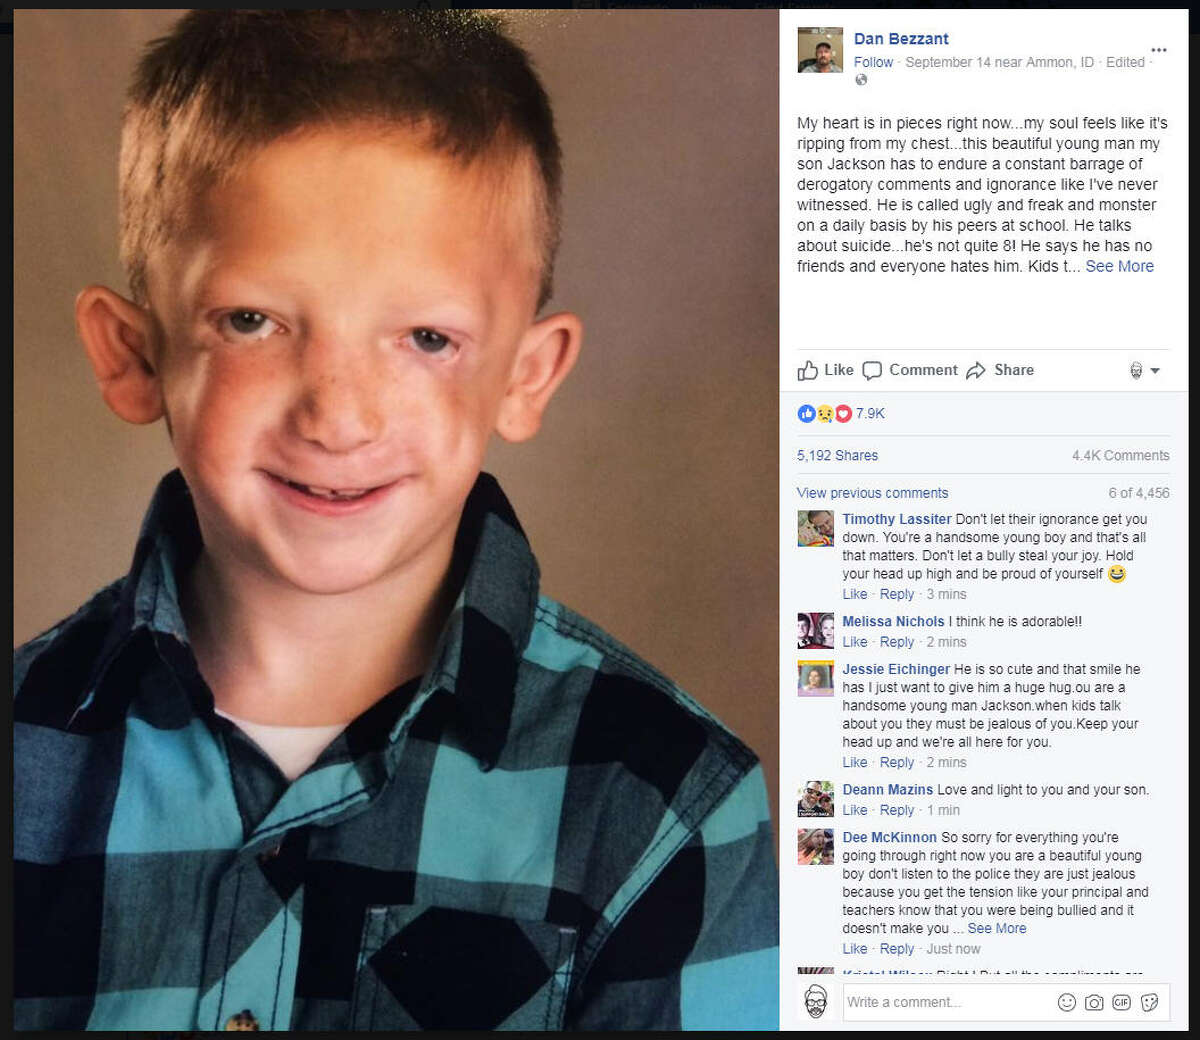 As a way to help cope with his son being relentlessly bullied in school, Dan Bezzant shared his family's story on Facebook and received thousands of comments in support.